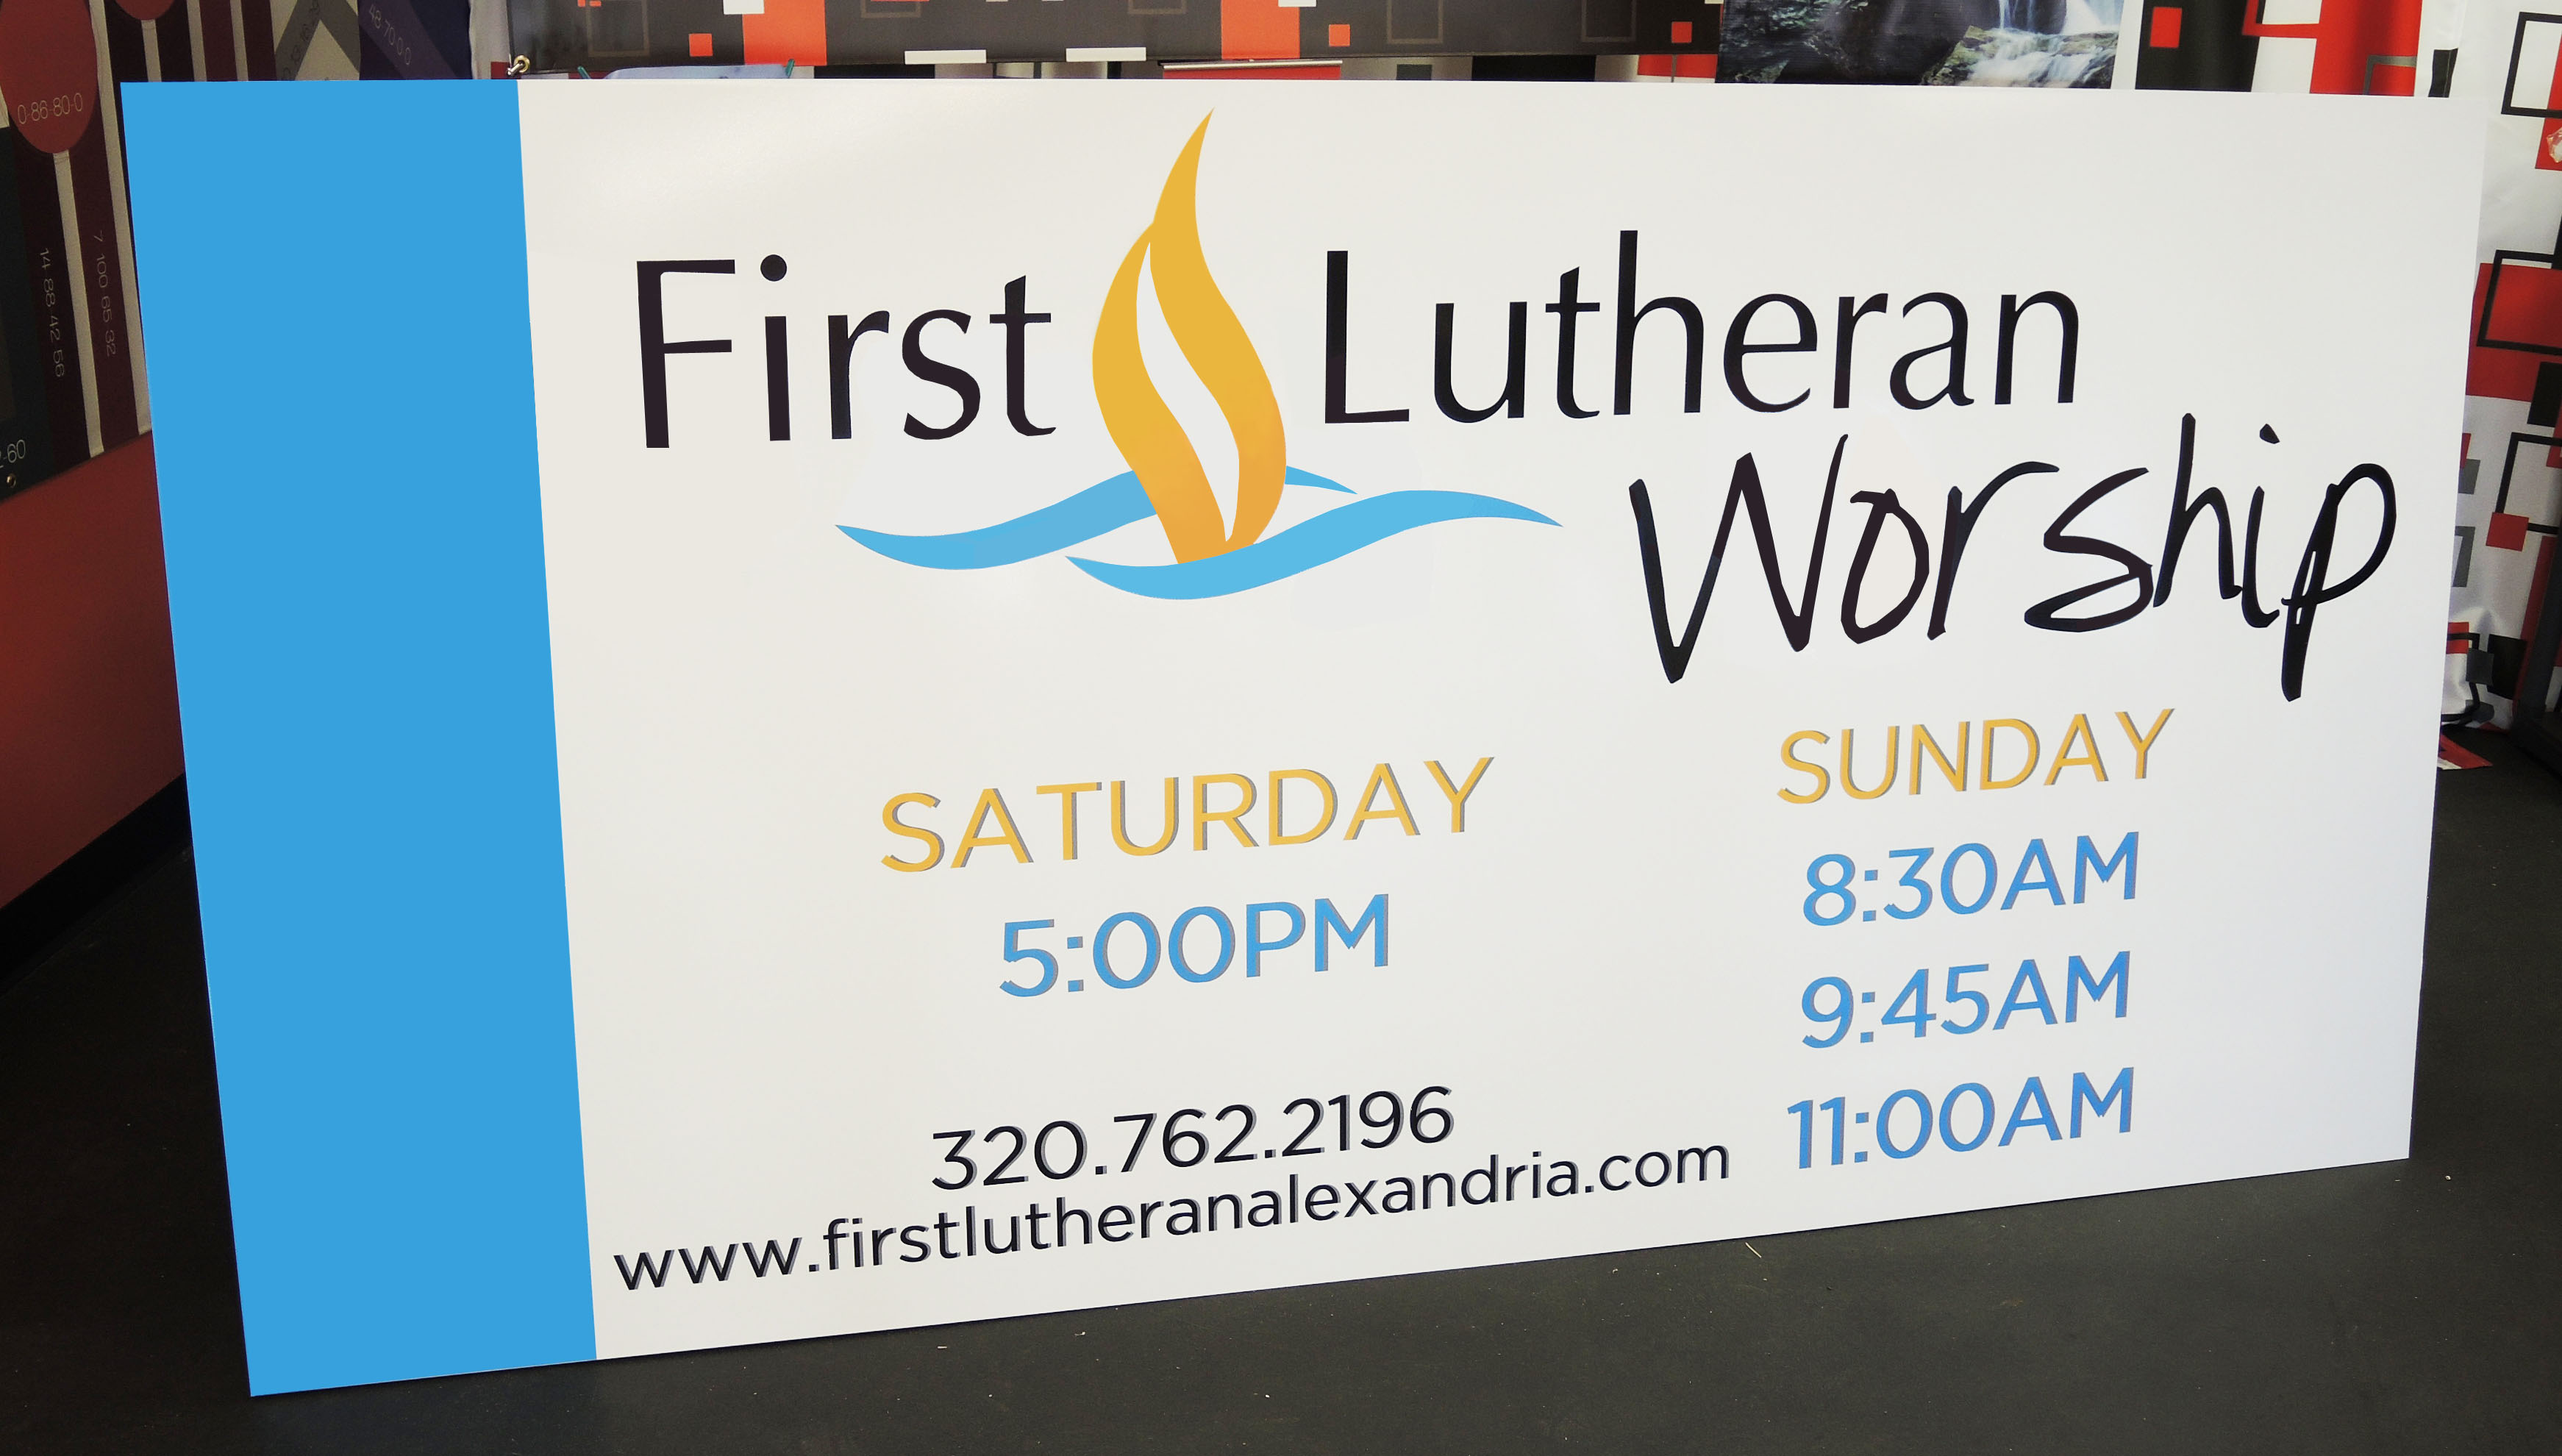 Custom Exterior Church Signs from Signmax